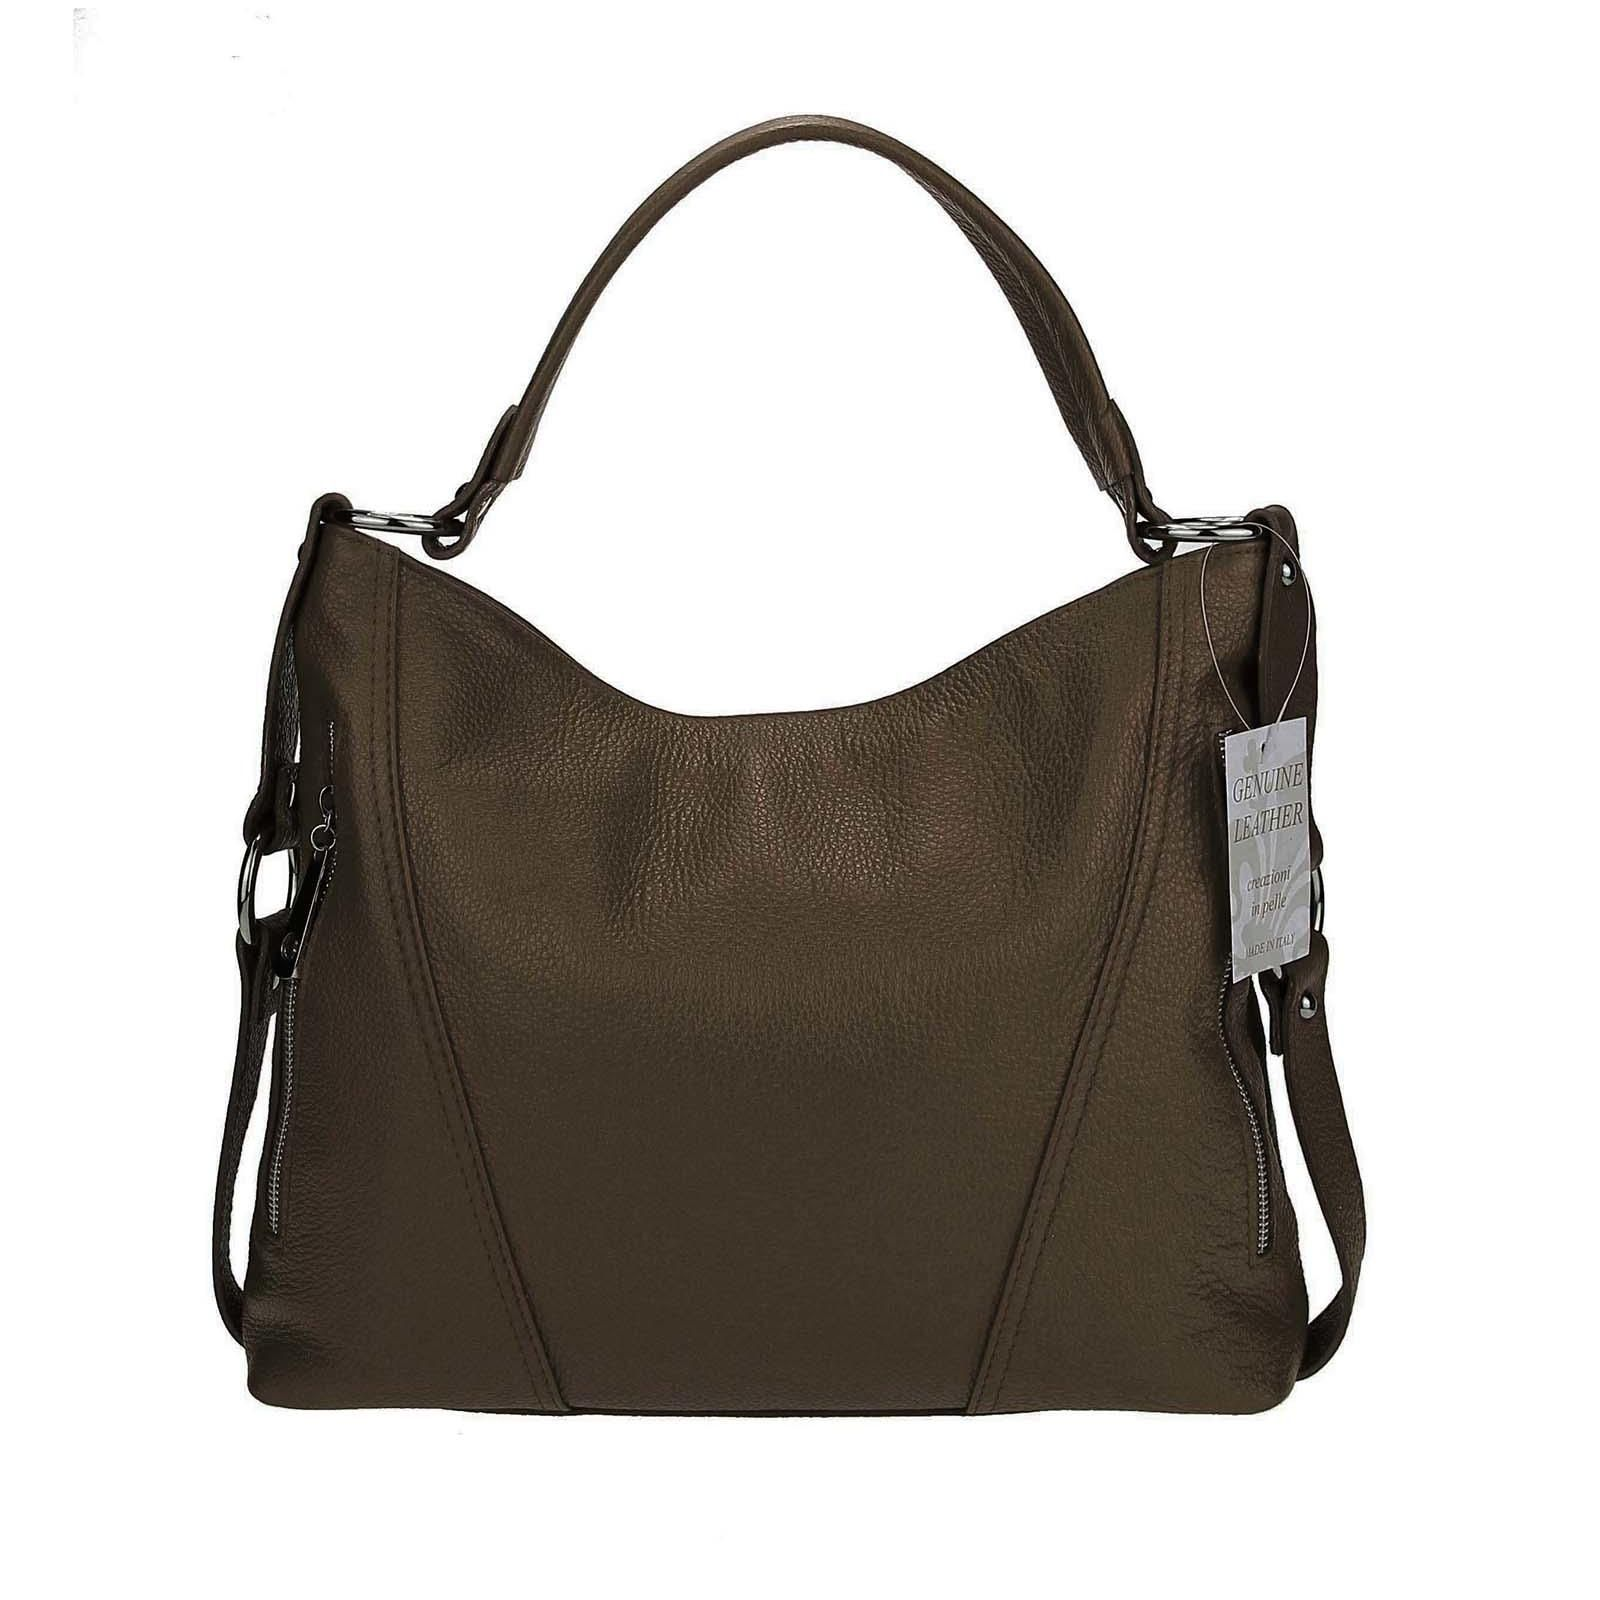 Photo of Made in Italy genuine leather Vera Pelle shopper handle bag shoulder bag bag taupe / mud